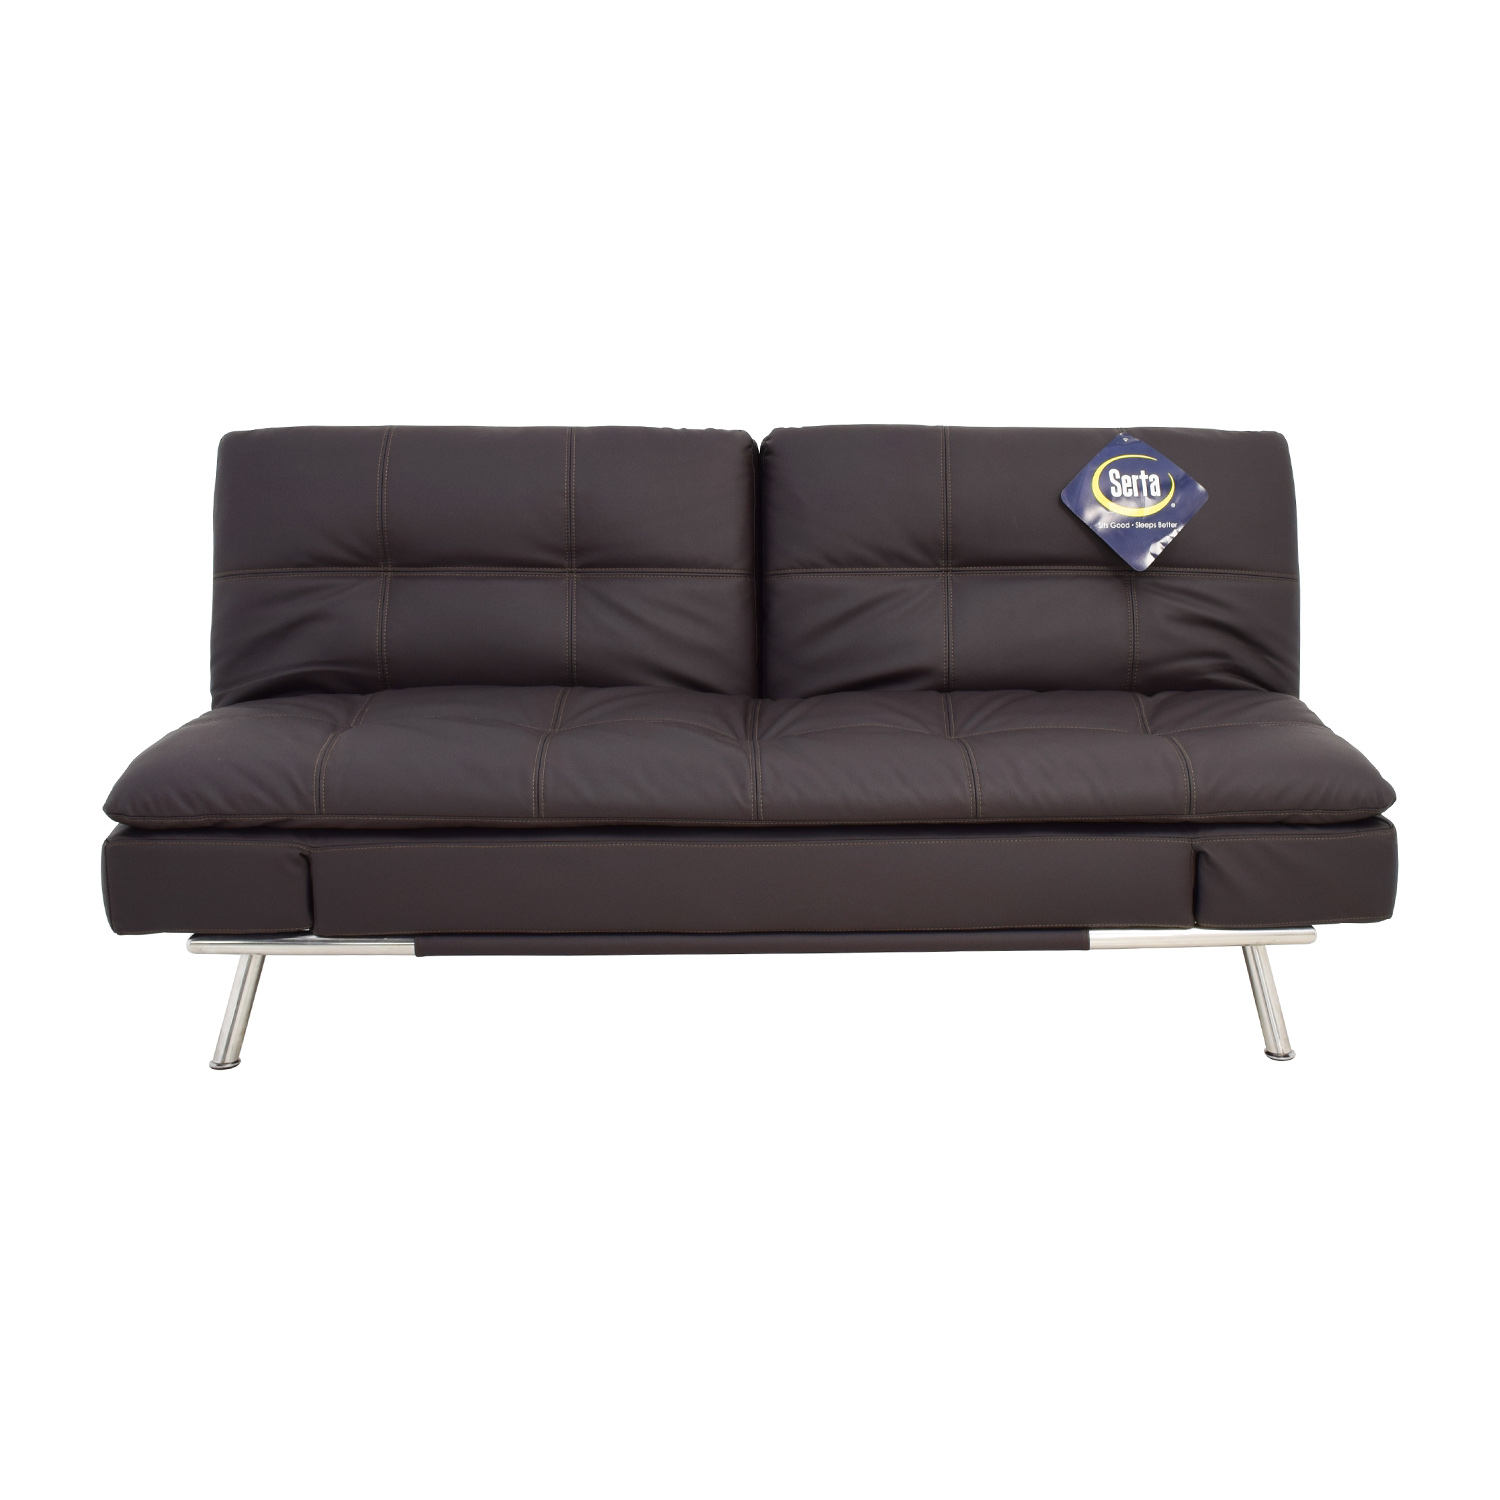 serta meredith convertible sofa reviews crypton cover sleeper shelby queen size in